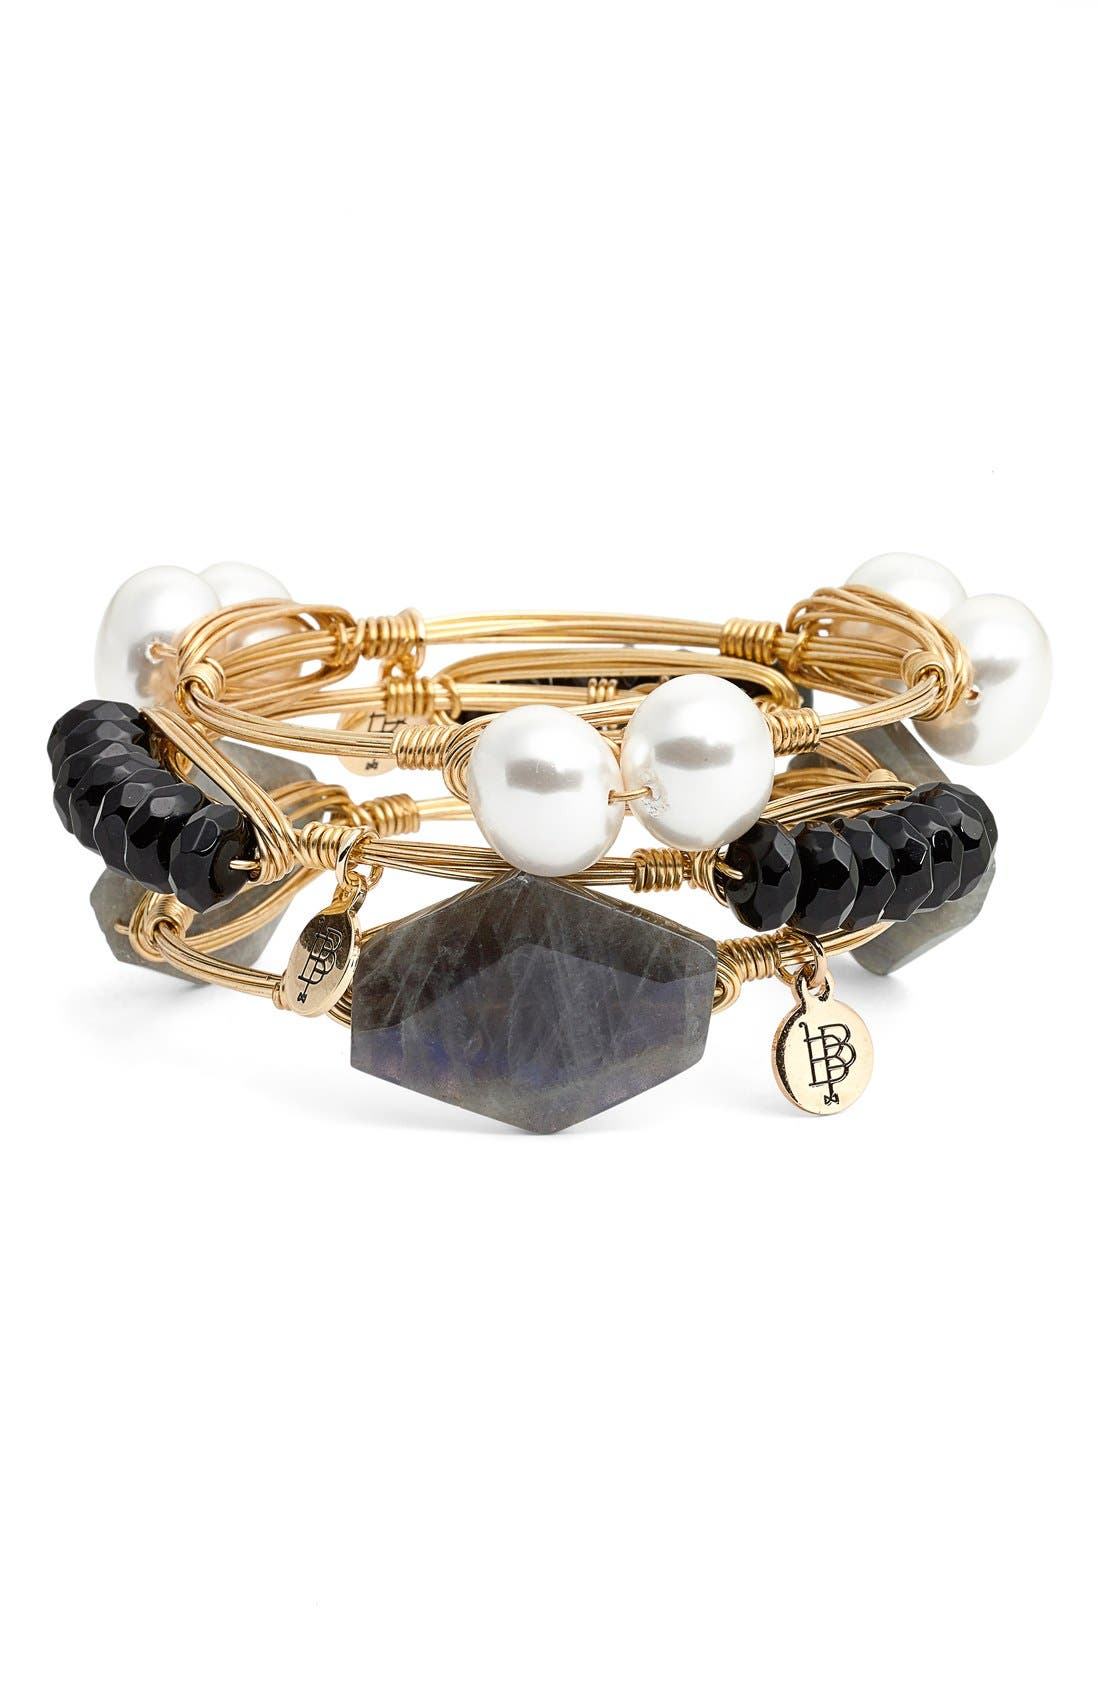 Main Image - Bourbon & Boweties Black & Labradorite Stone Bracelets (Set of 3)